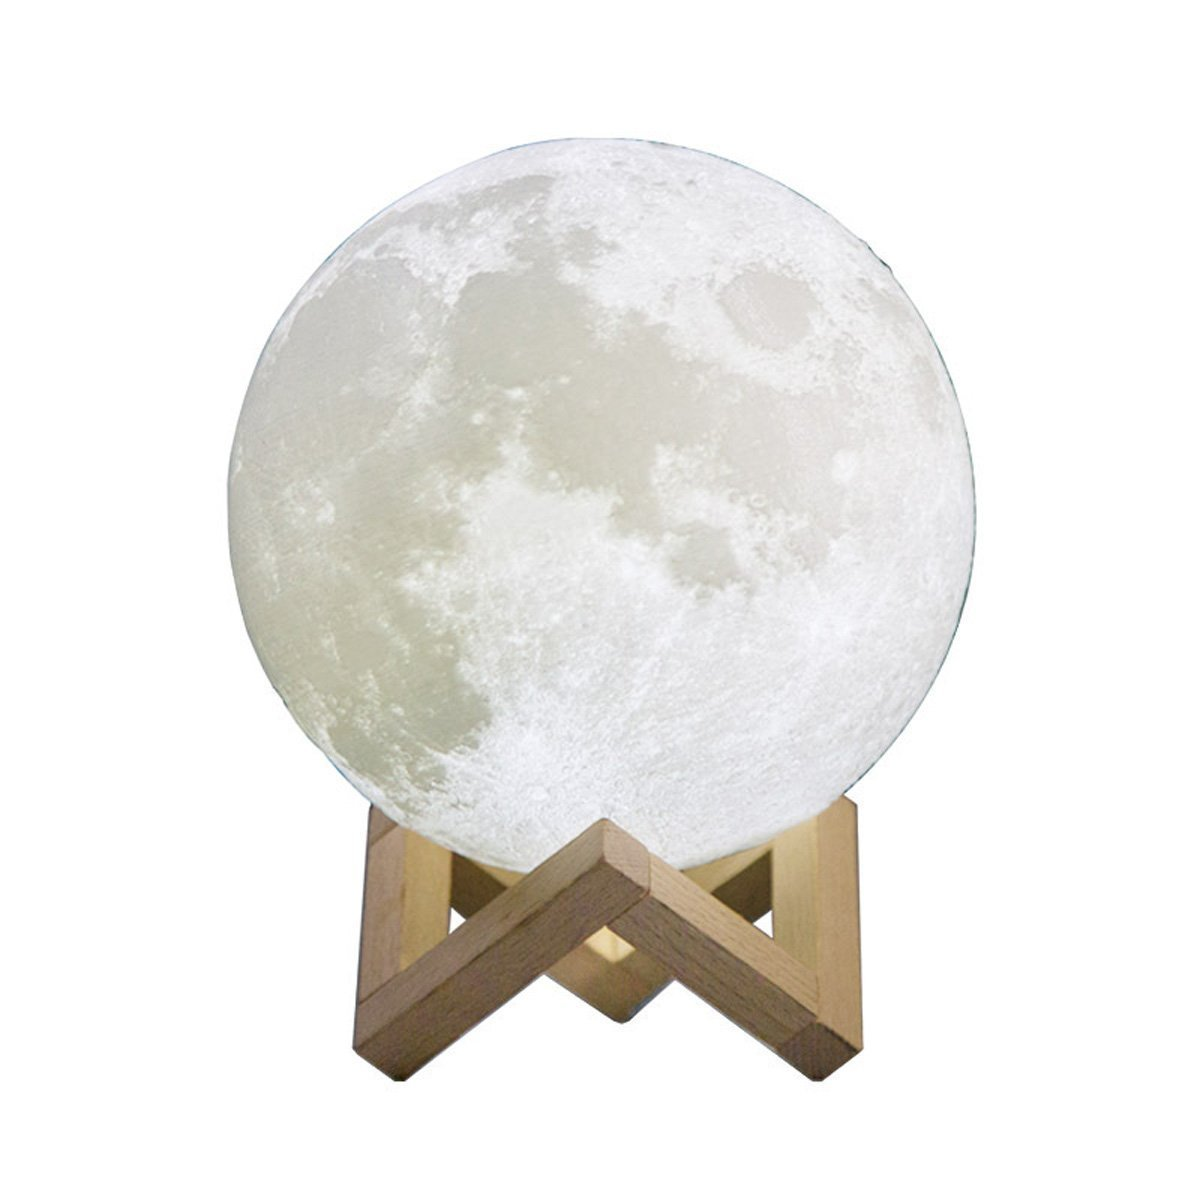 3D Printing Moon Lamp Night Light,WONFAST USB Rechargerable Touch Switch Brightness Yellow and White Adjustable Desk Lamp With Wooden Mount,Kids Room Decor Birthday Christmas Gift (7 inch/18CM)